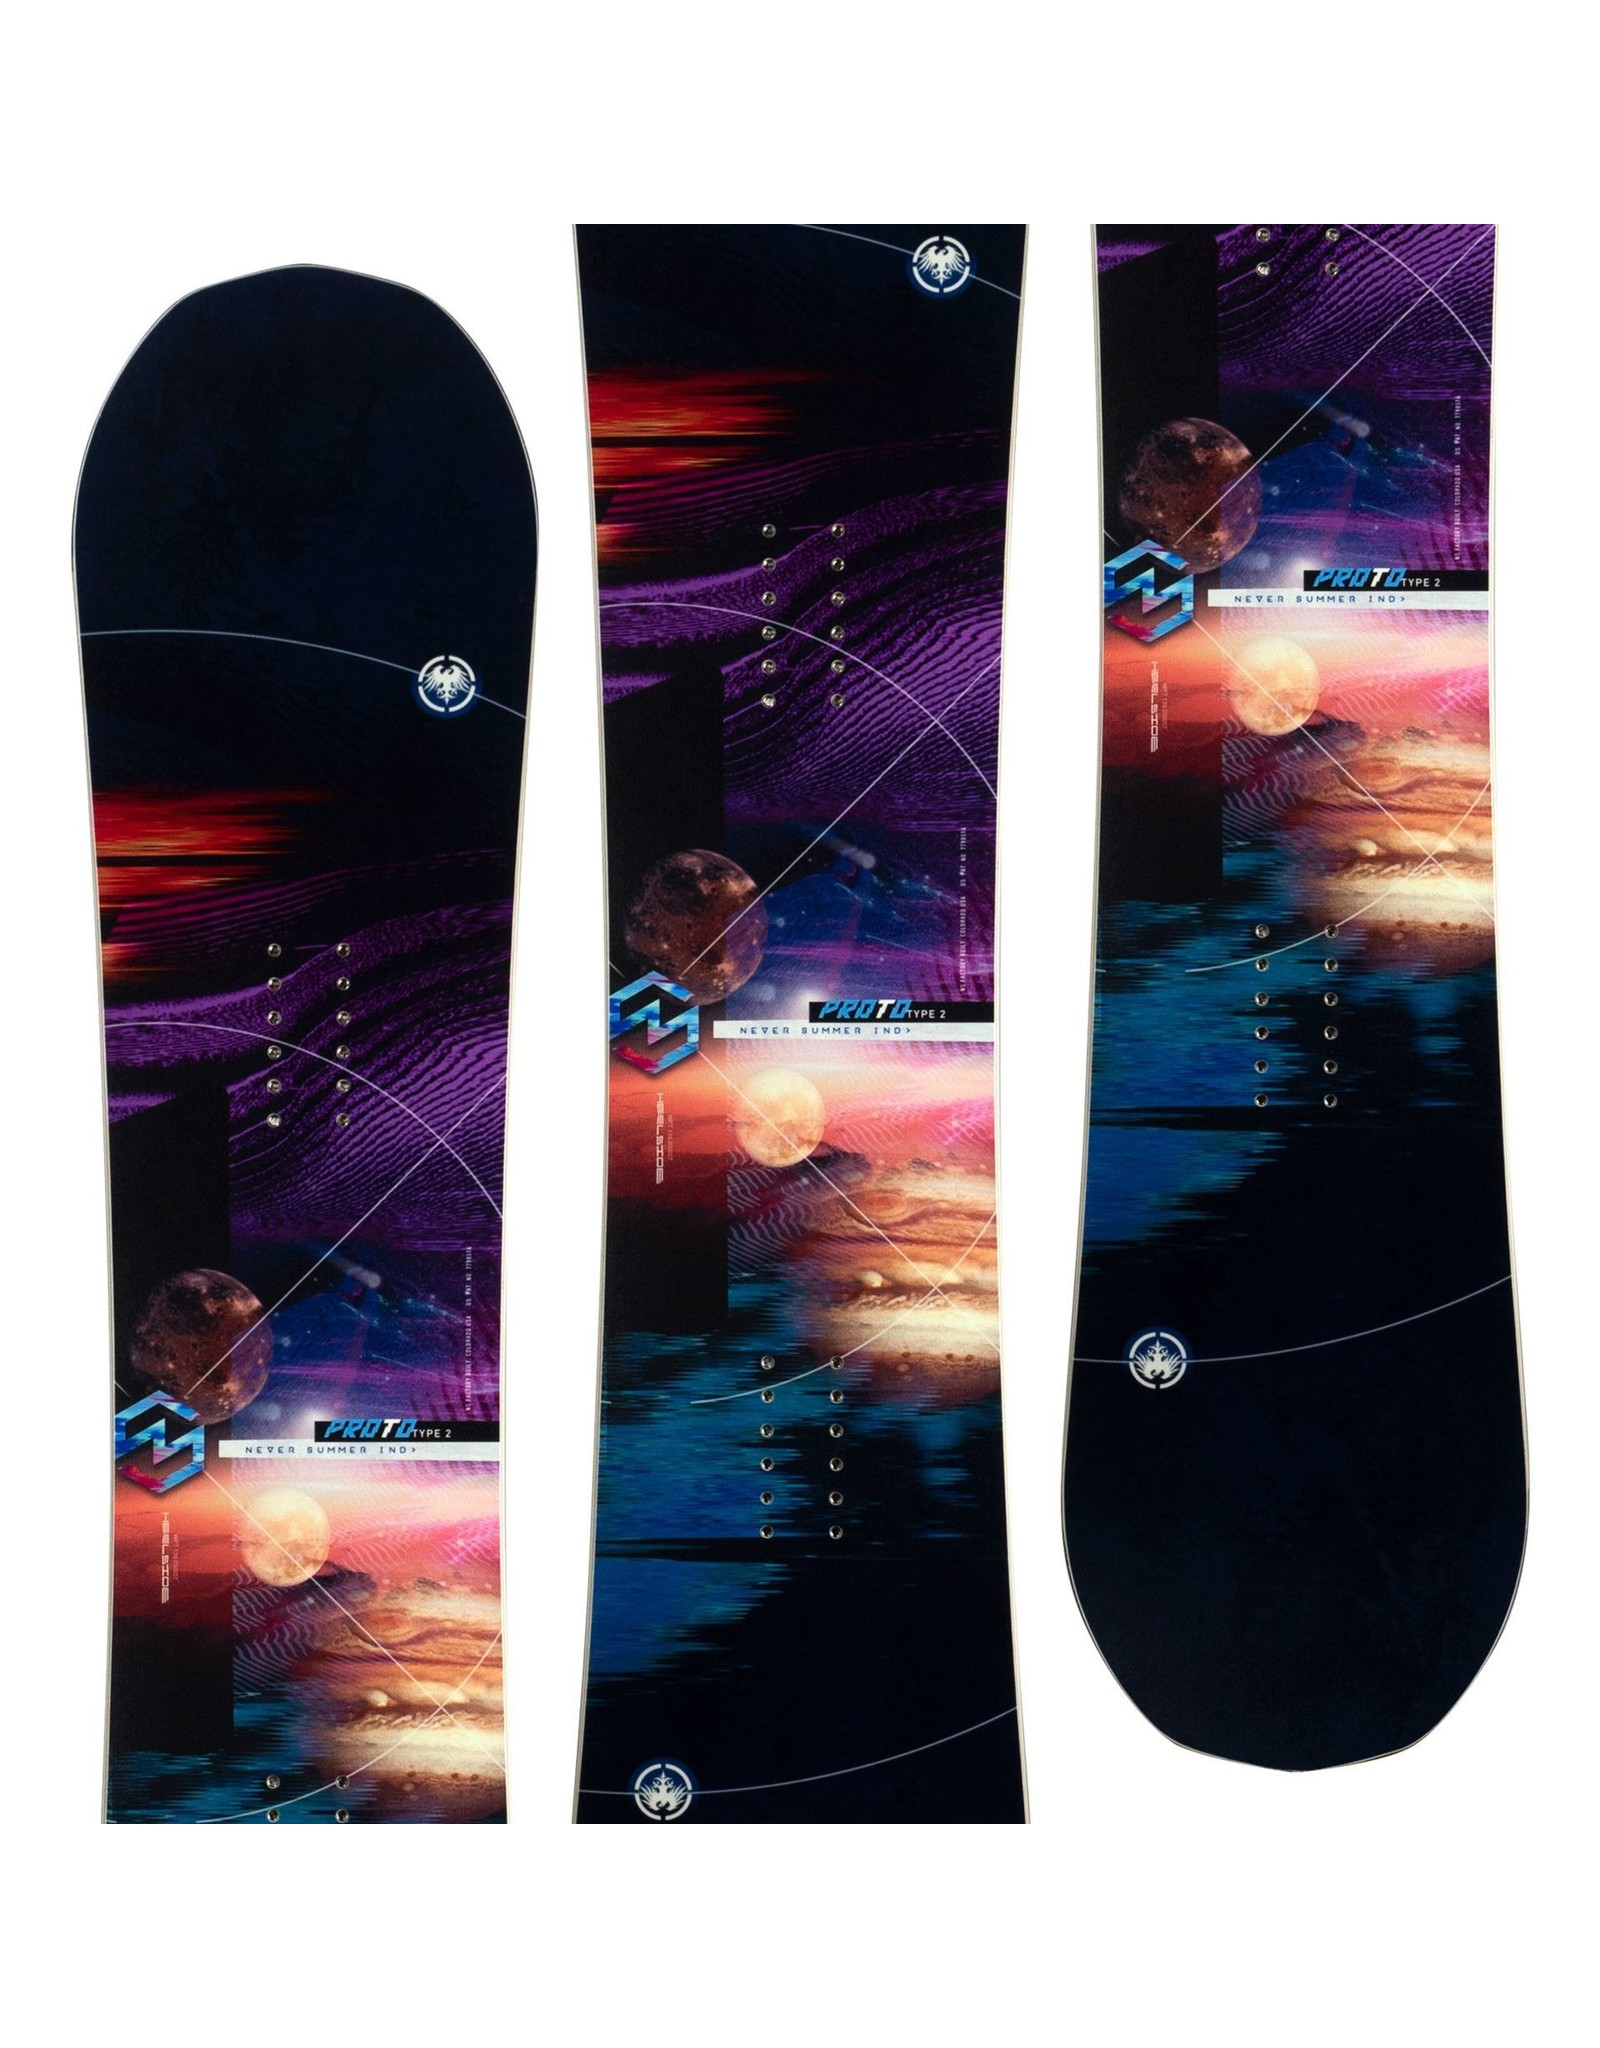 NEVER SUMMER NEVER SUMMER - WOMEN'S PROTO TYPE TWO - 151